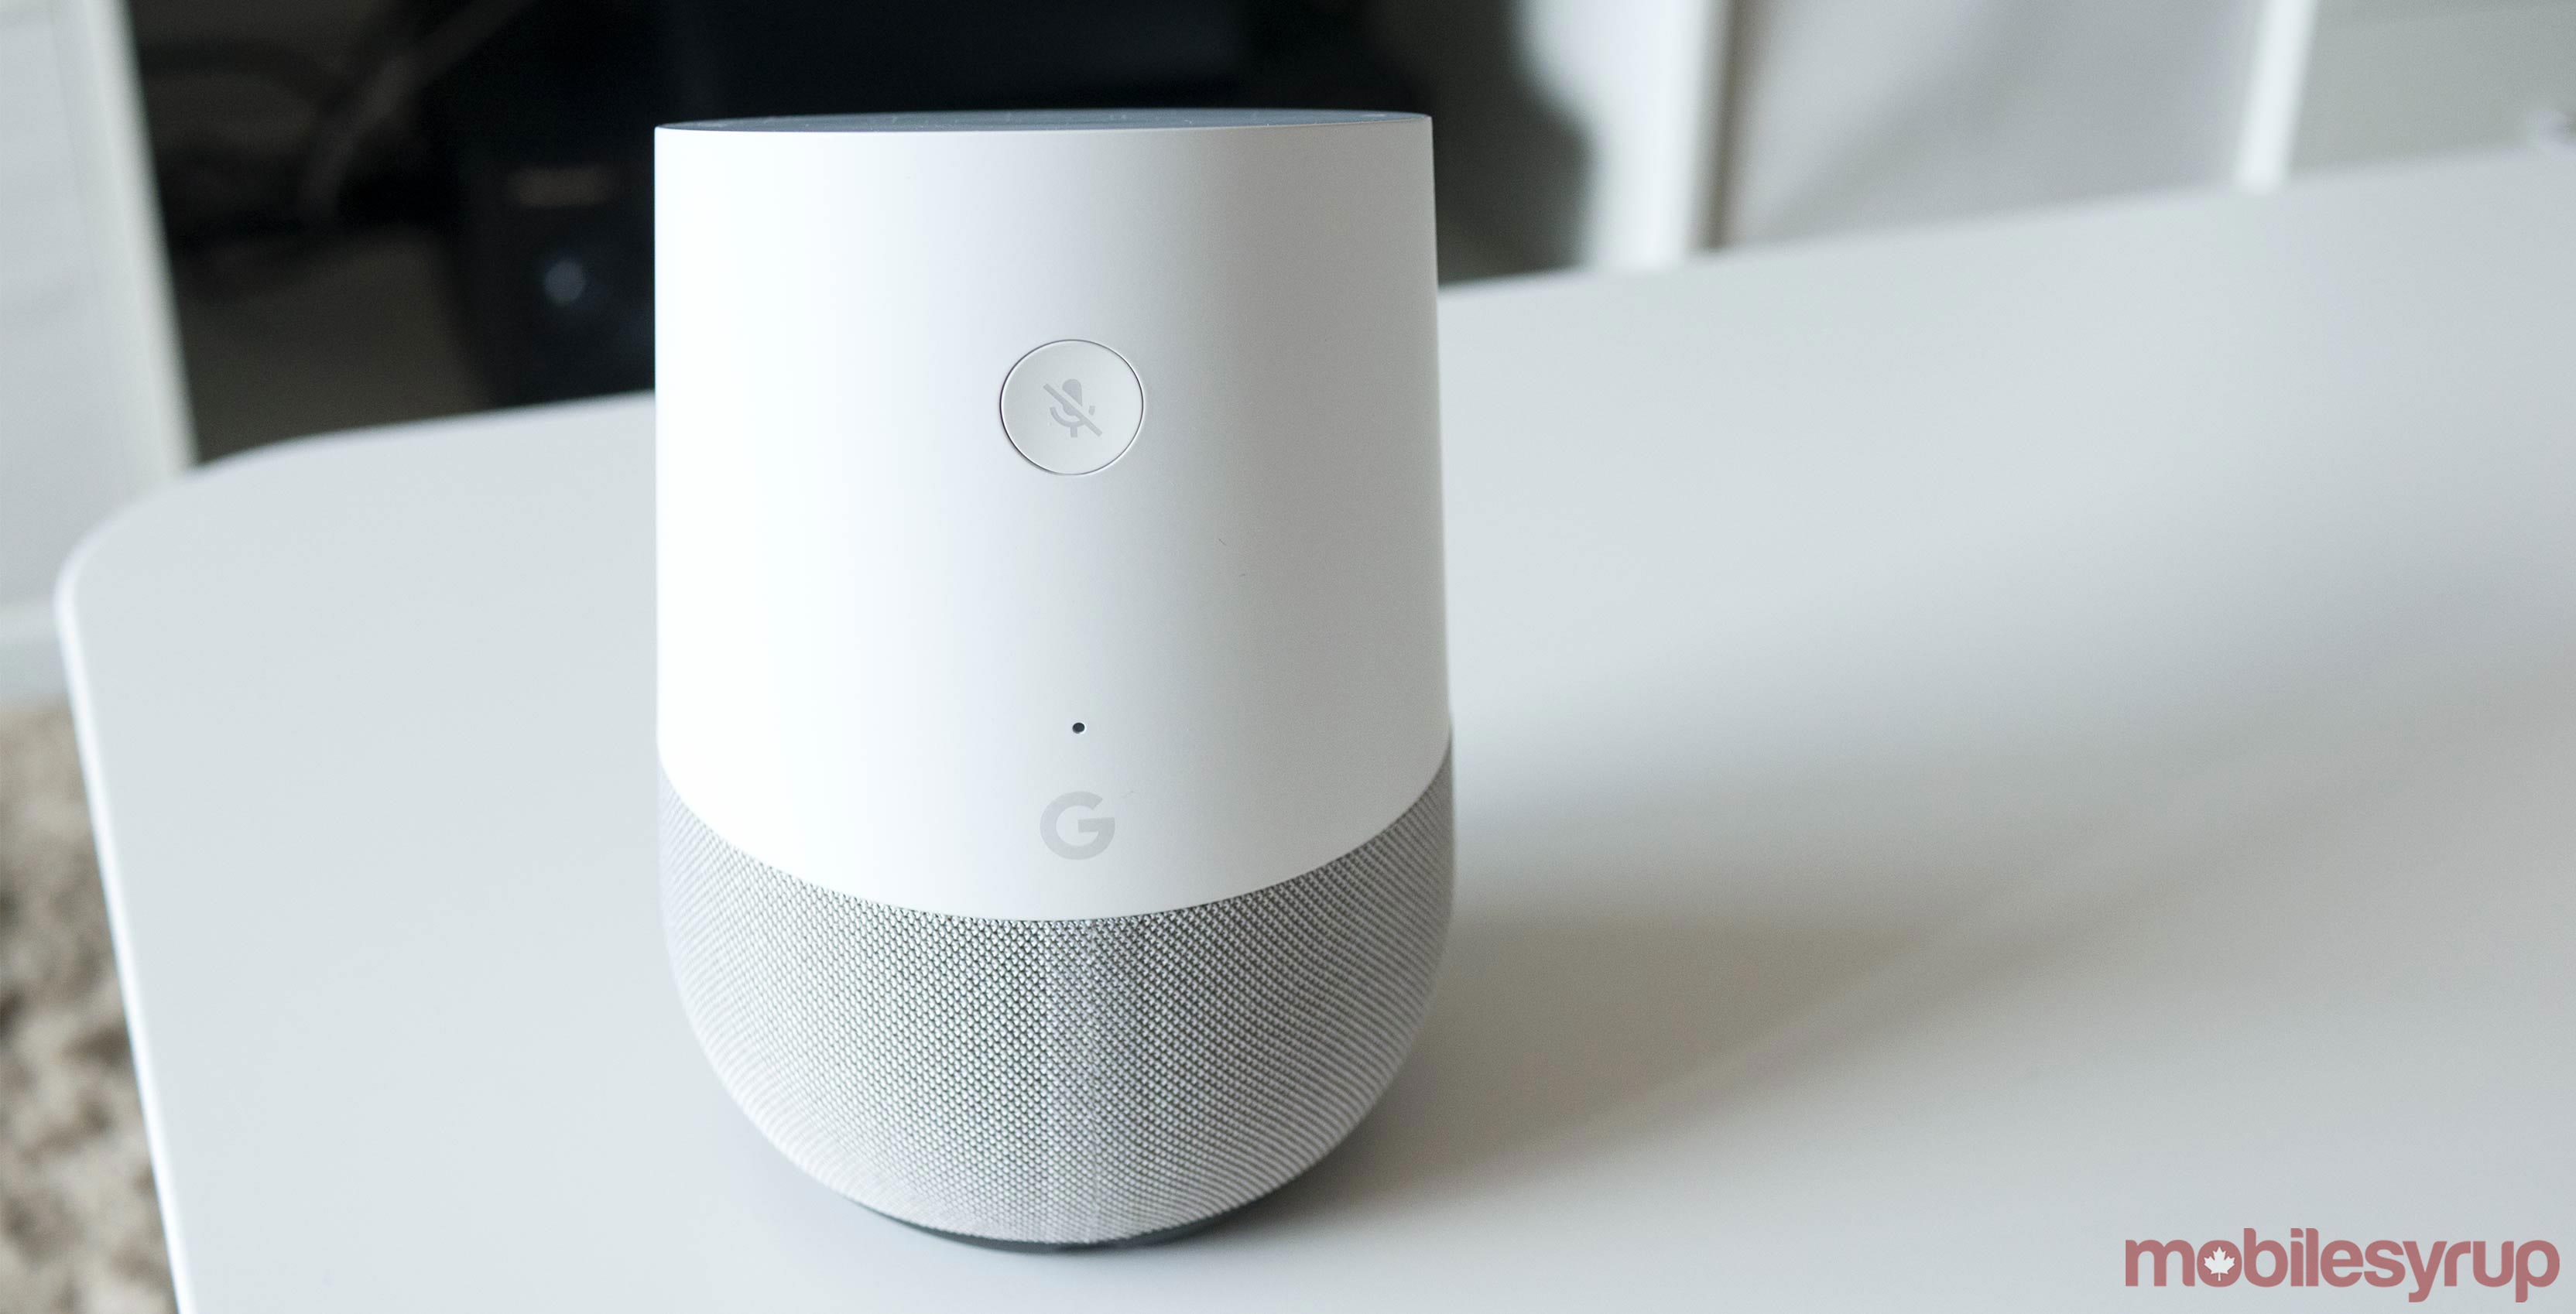 Google readying a premium Google Home model?